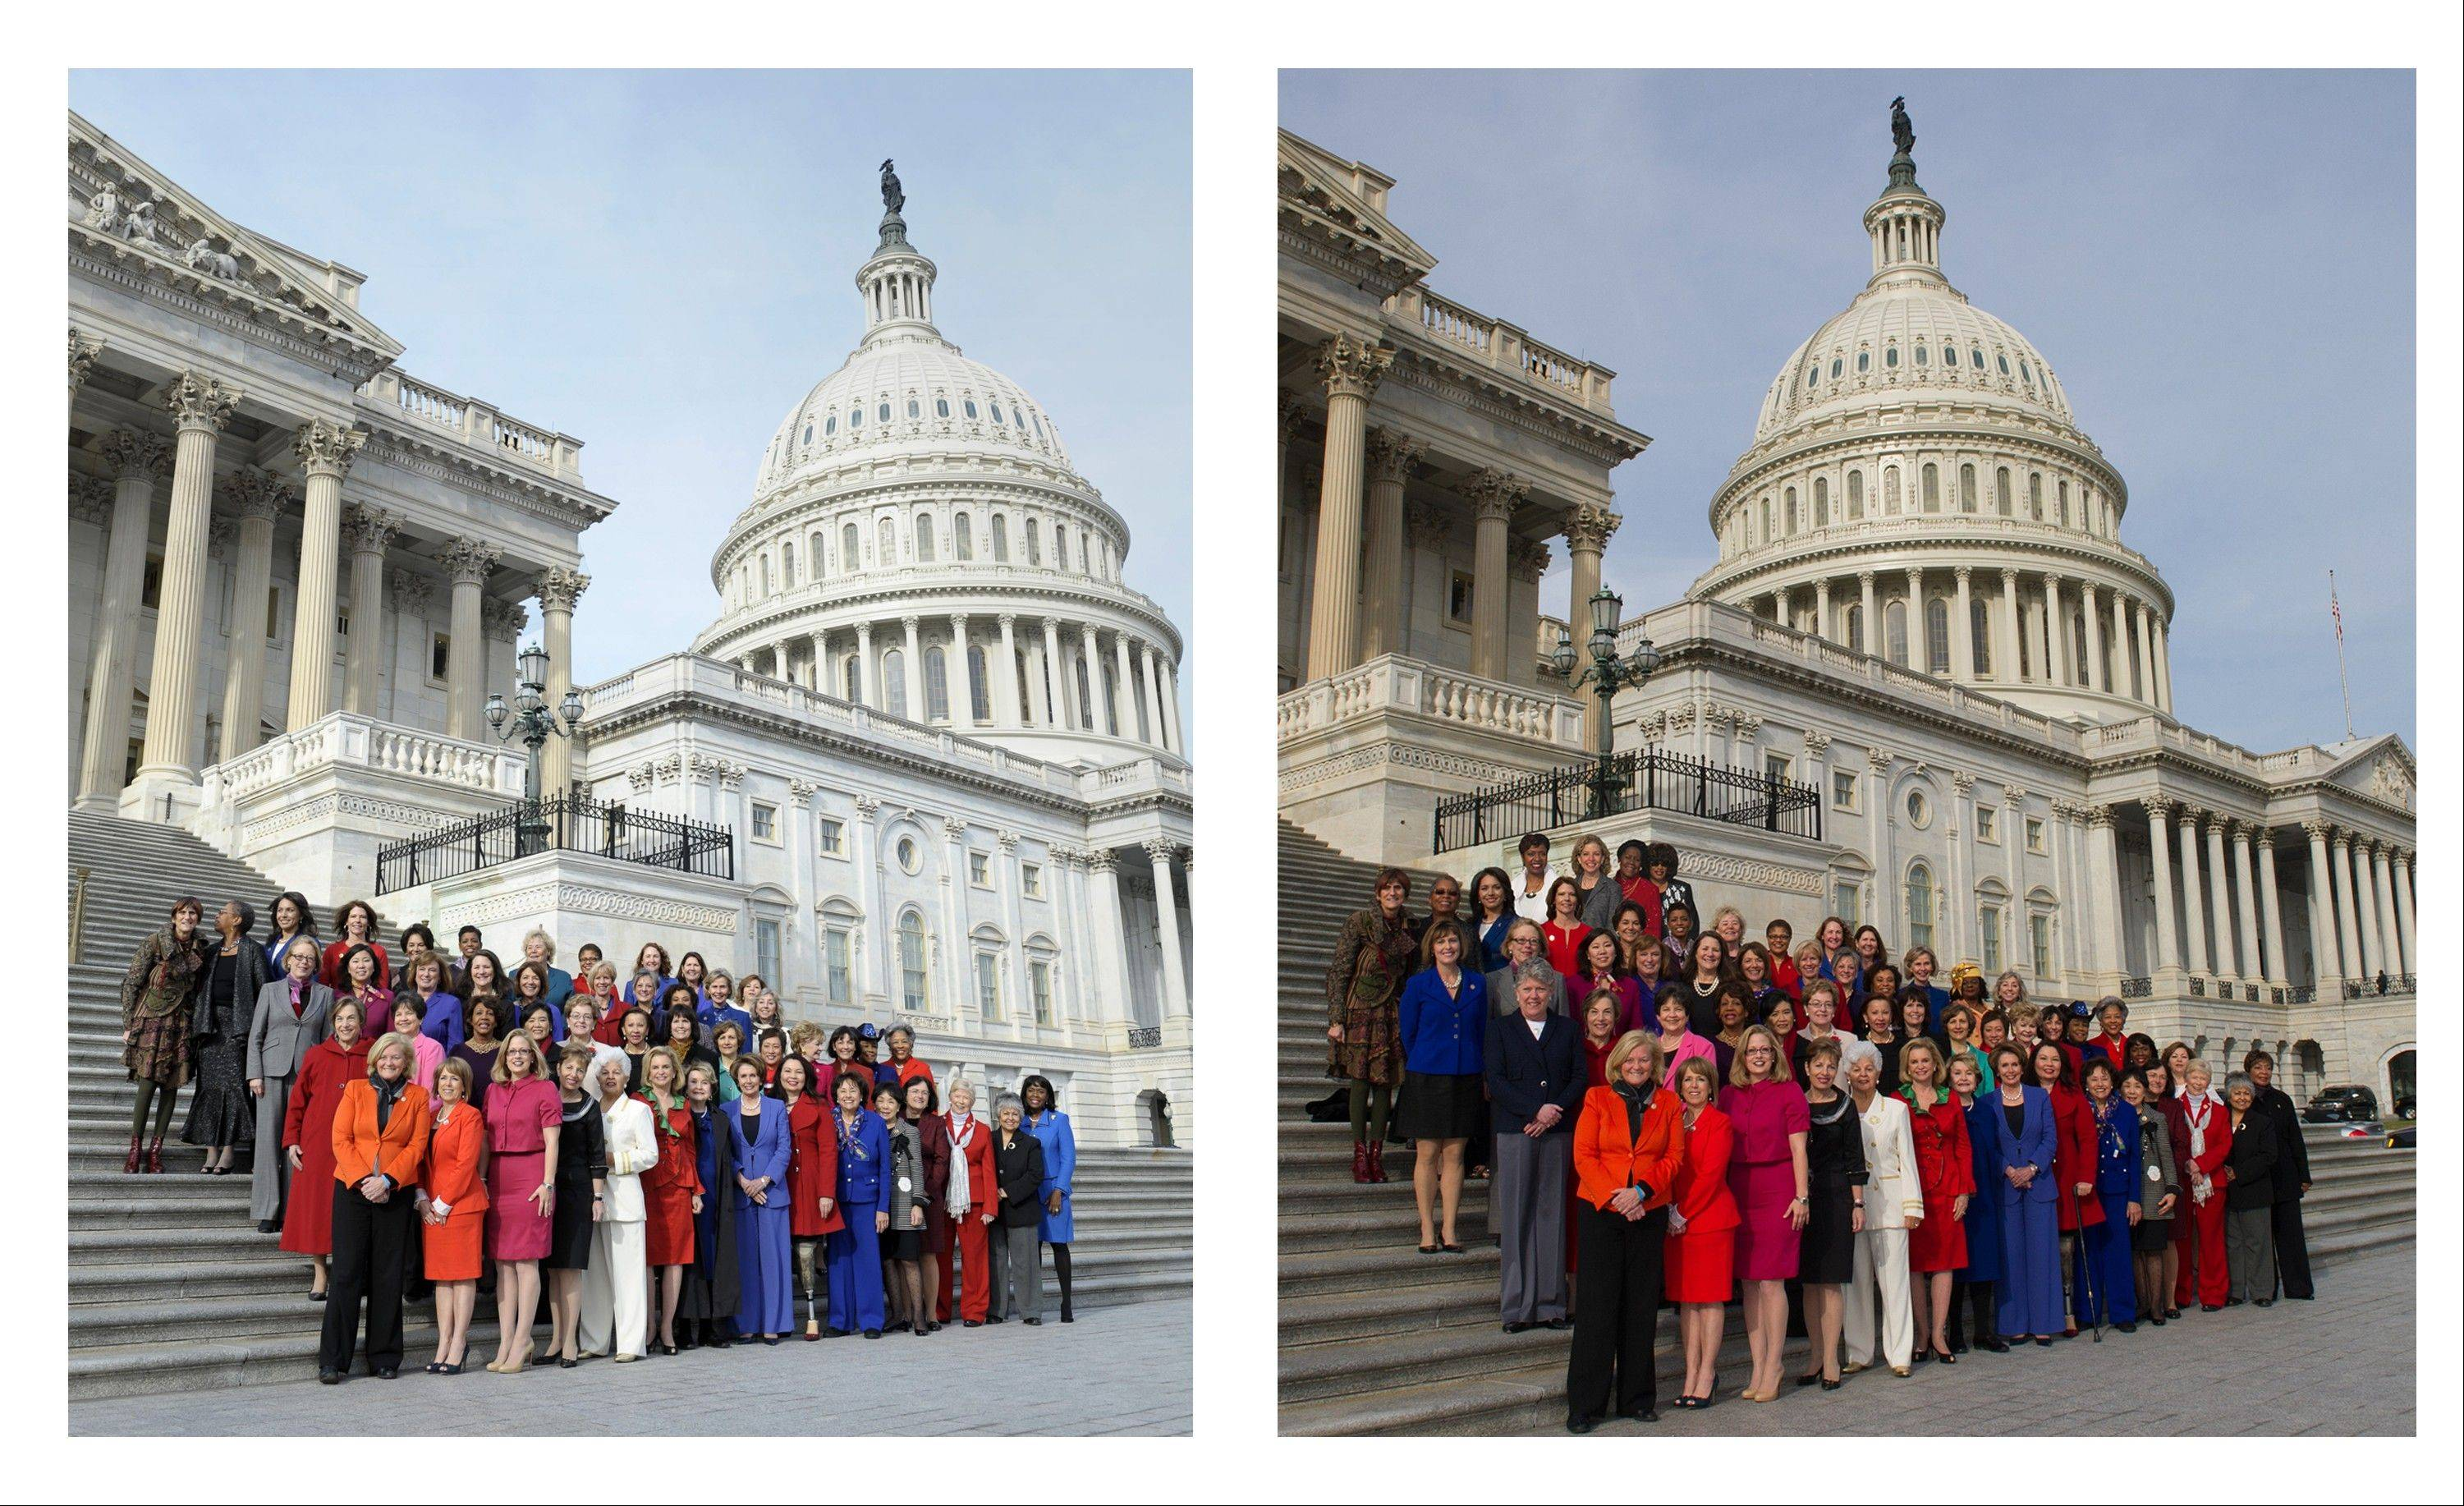 Associated PressThis combo of two photos shows, at left, an Associated Press photo taken Jan. 3, 2013 of House Minority Leader Nancy Pelosi posing with female House members on Capitol Hill in Washington, and at right, a screen grab from Pelosi's Flickr page of an altered photo of Pelosi with female House members on Capitol Hill in Washington. The group photo shows four House members, in the back row, who arrived too late to pose on the Capitol steps.